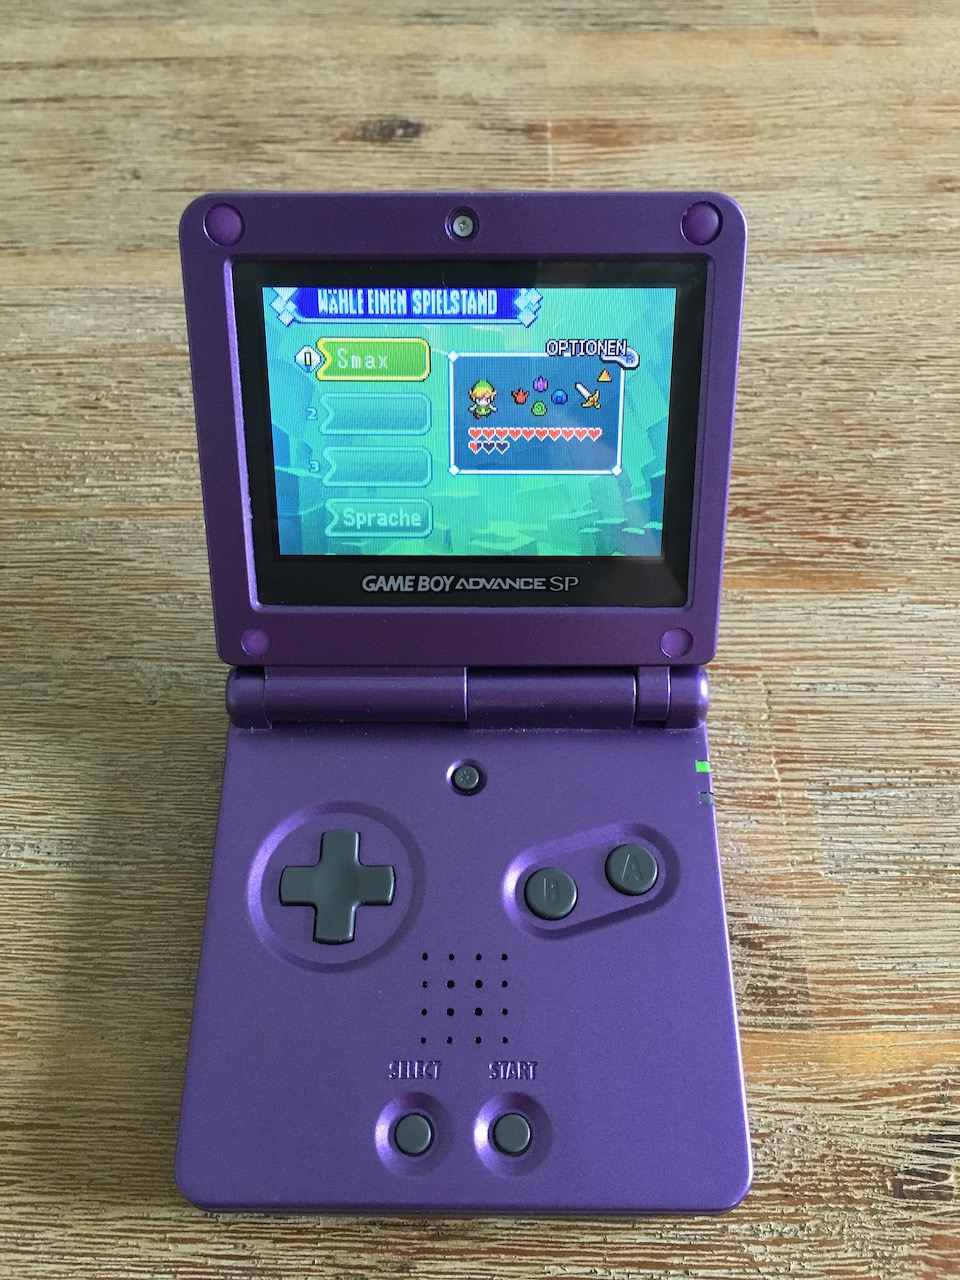 A Game Boy Advance SP showing the save game screen from The Legend of Zelda: The Minish Cap